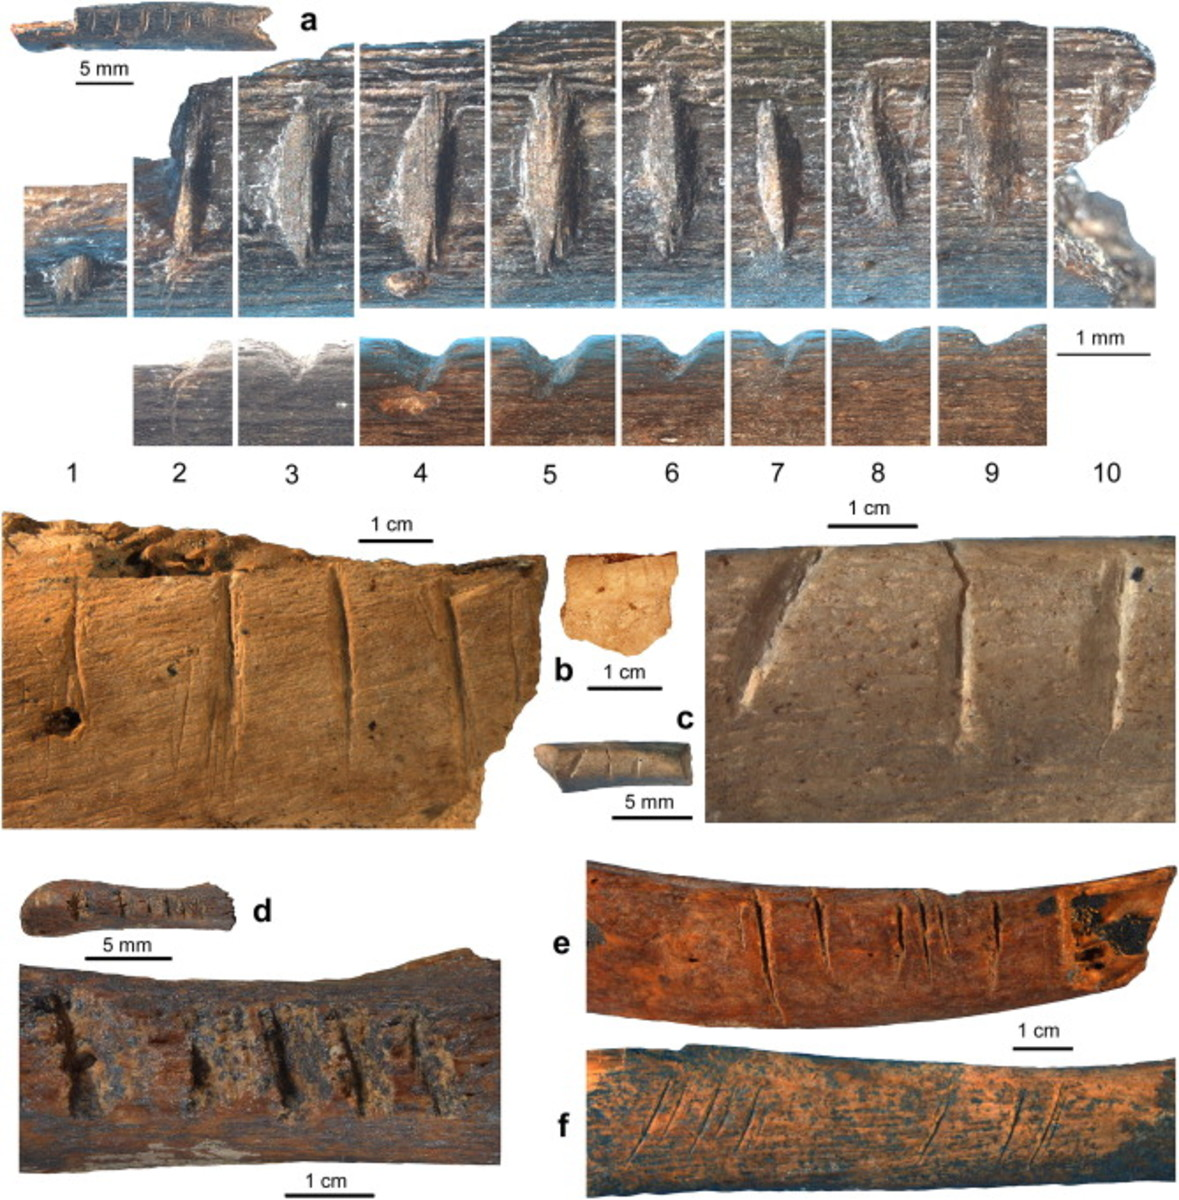 Notched bone fragments from Post-Howiesons Poort (a–b), Howiesons Poort (c), and Pre-Still Bay (d) layers at Sibudu Cave compared to cut-marked rib fragments (e–f).